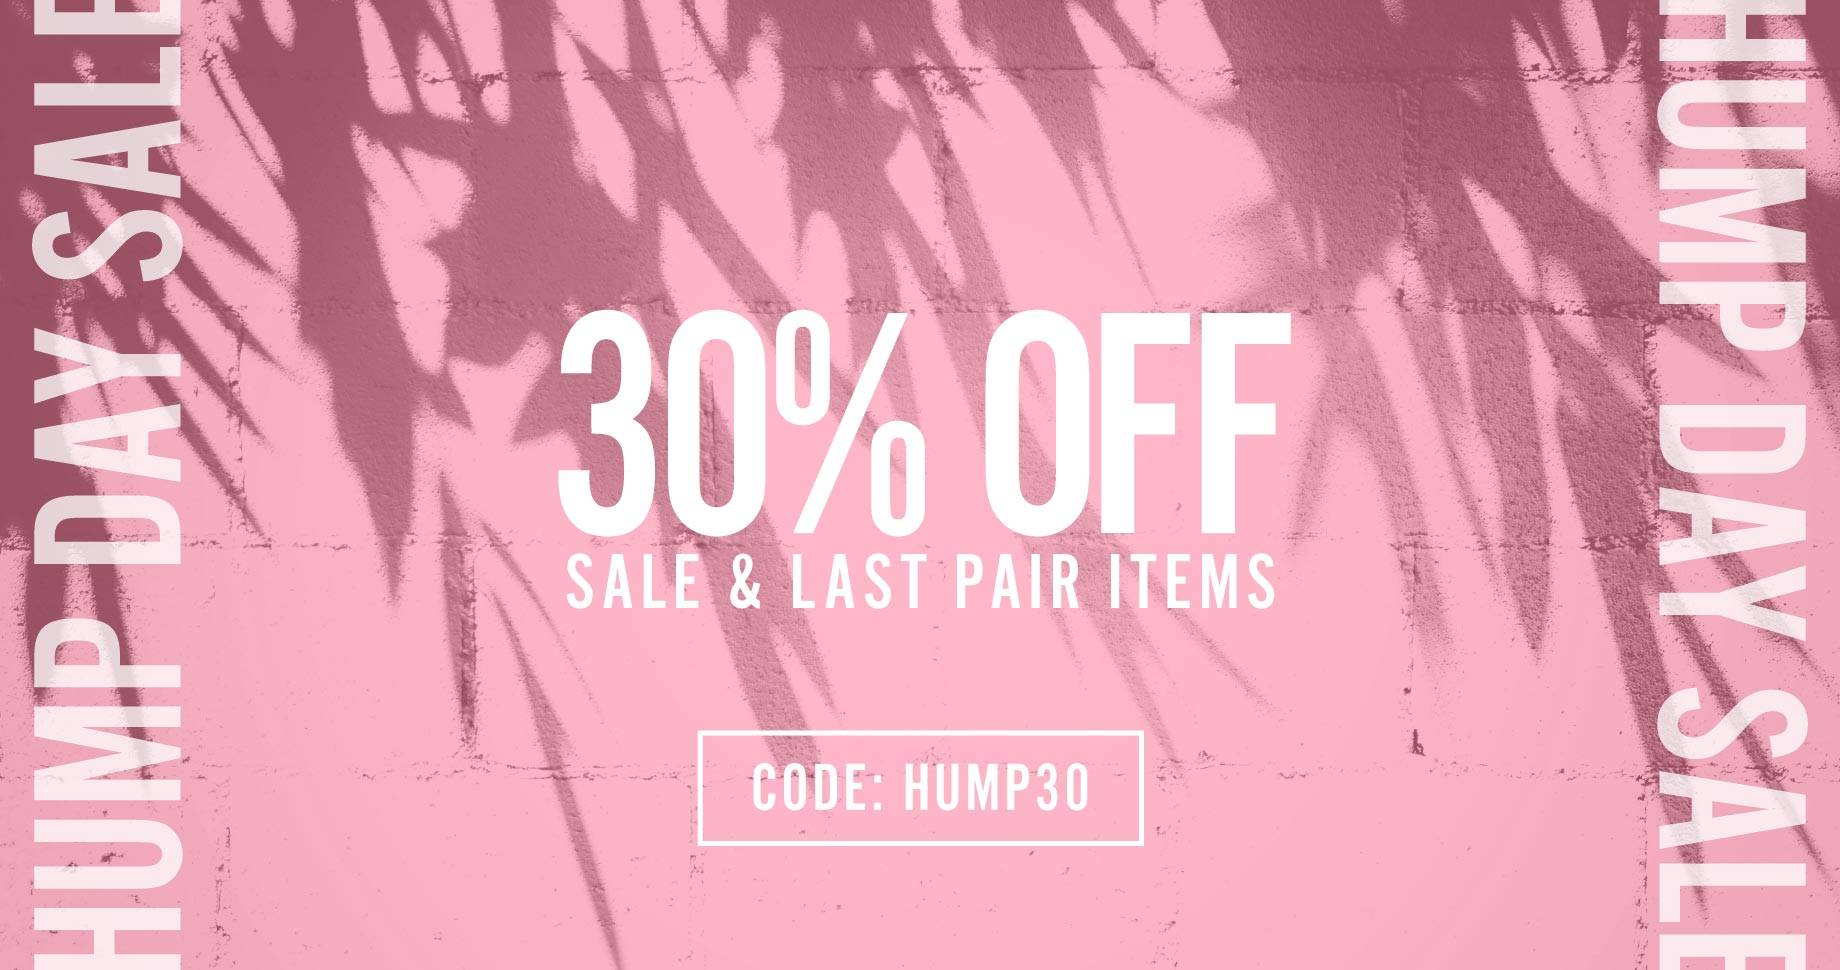 Hump Day Sale.  30% Off Sale & Last Pair Items | Code: HUMP30